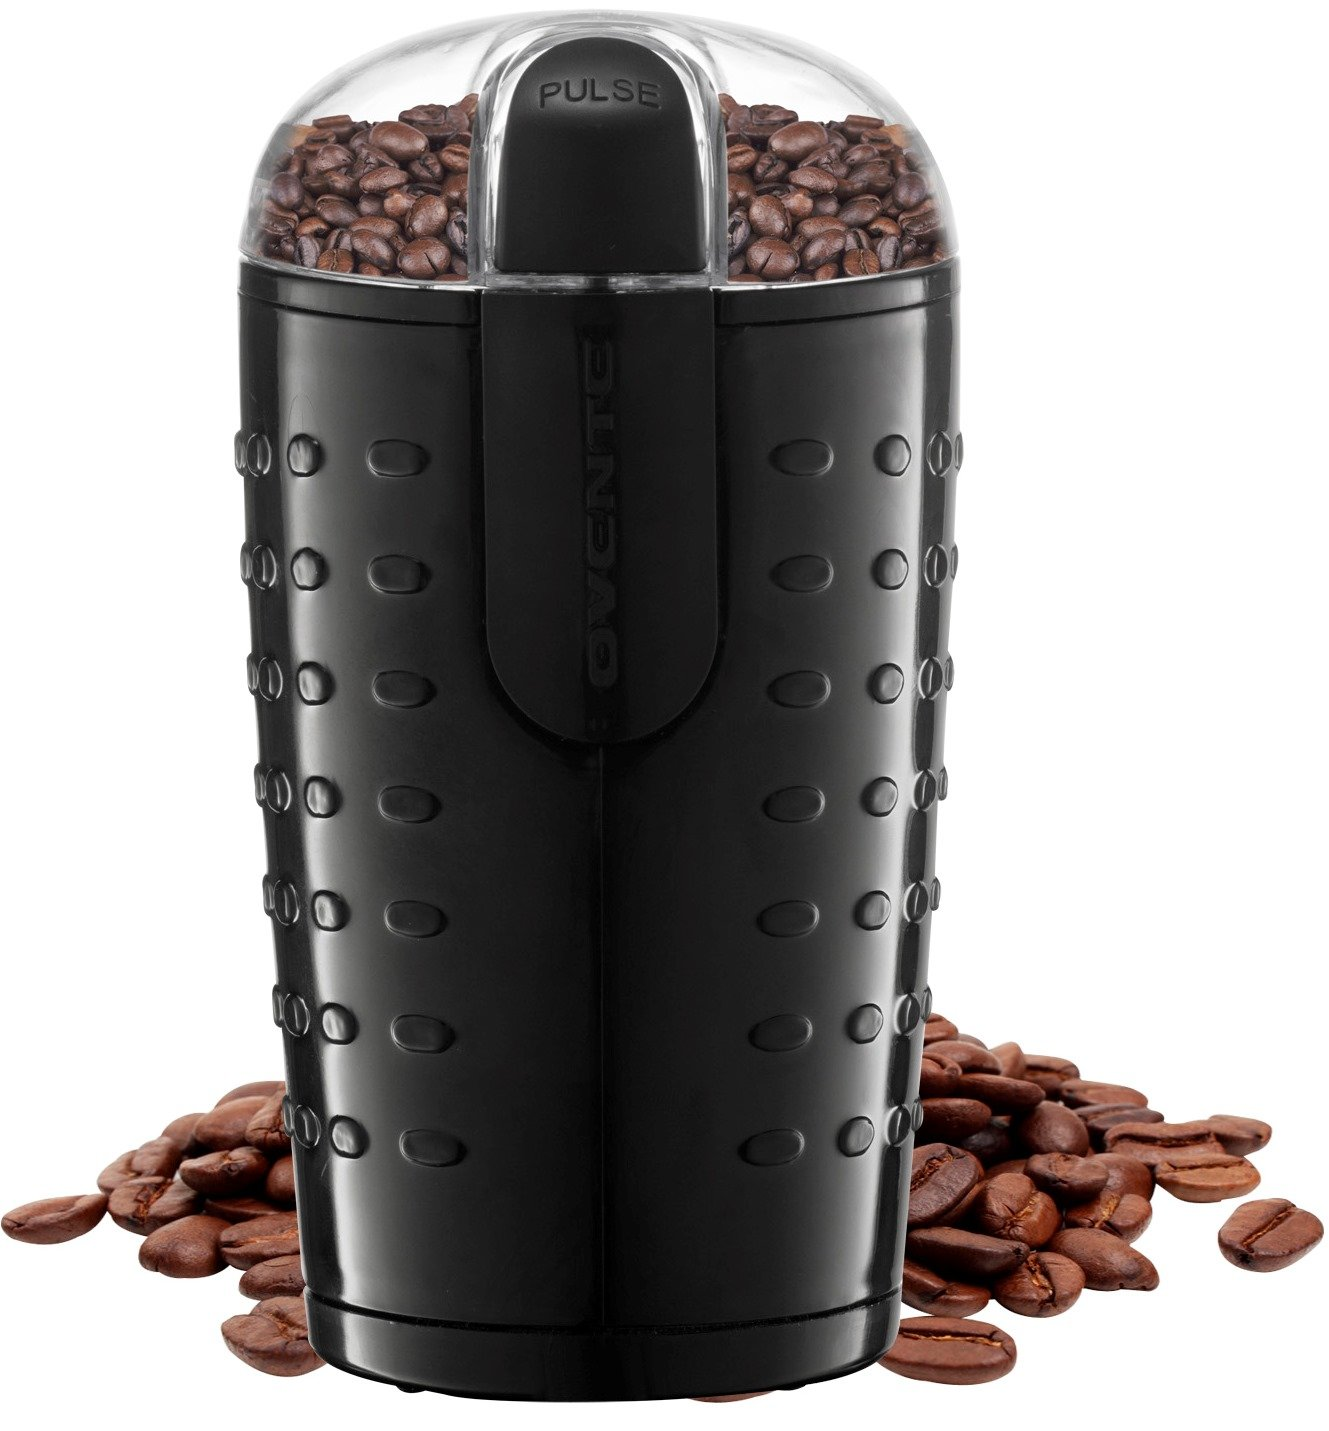 OVENTE One-Touch Electric Coffee Grinder and Other Spices-Seeds, Nuts, Grains-Stainless Steel Blades, Black (CG225B), 2.5oz by OVENTE